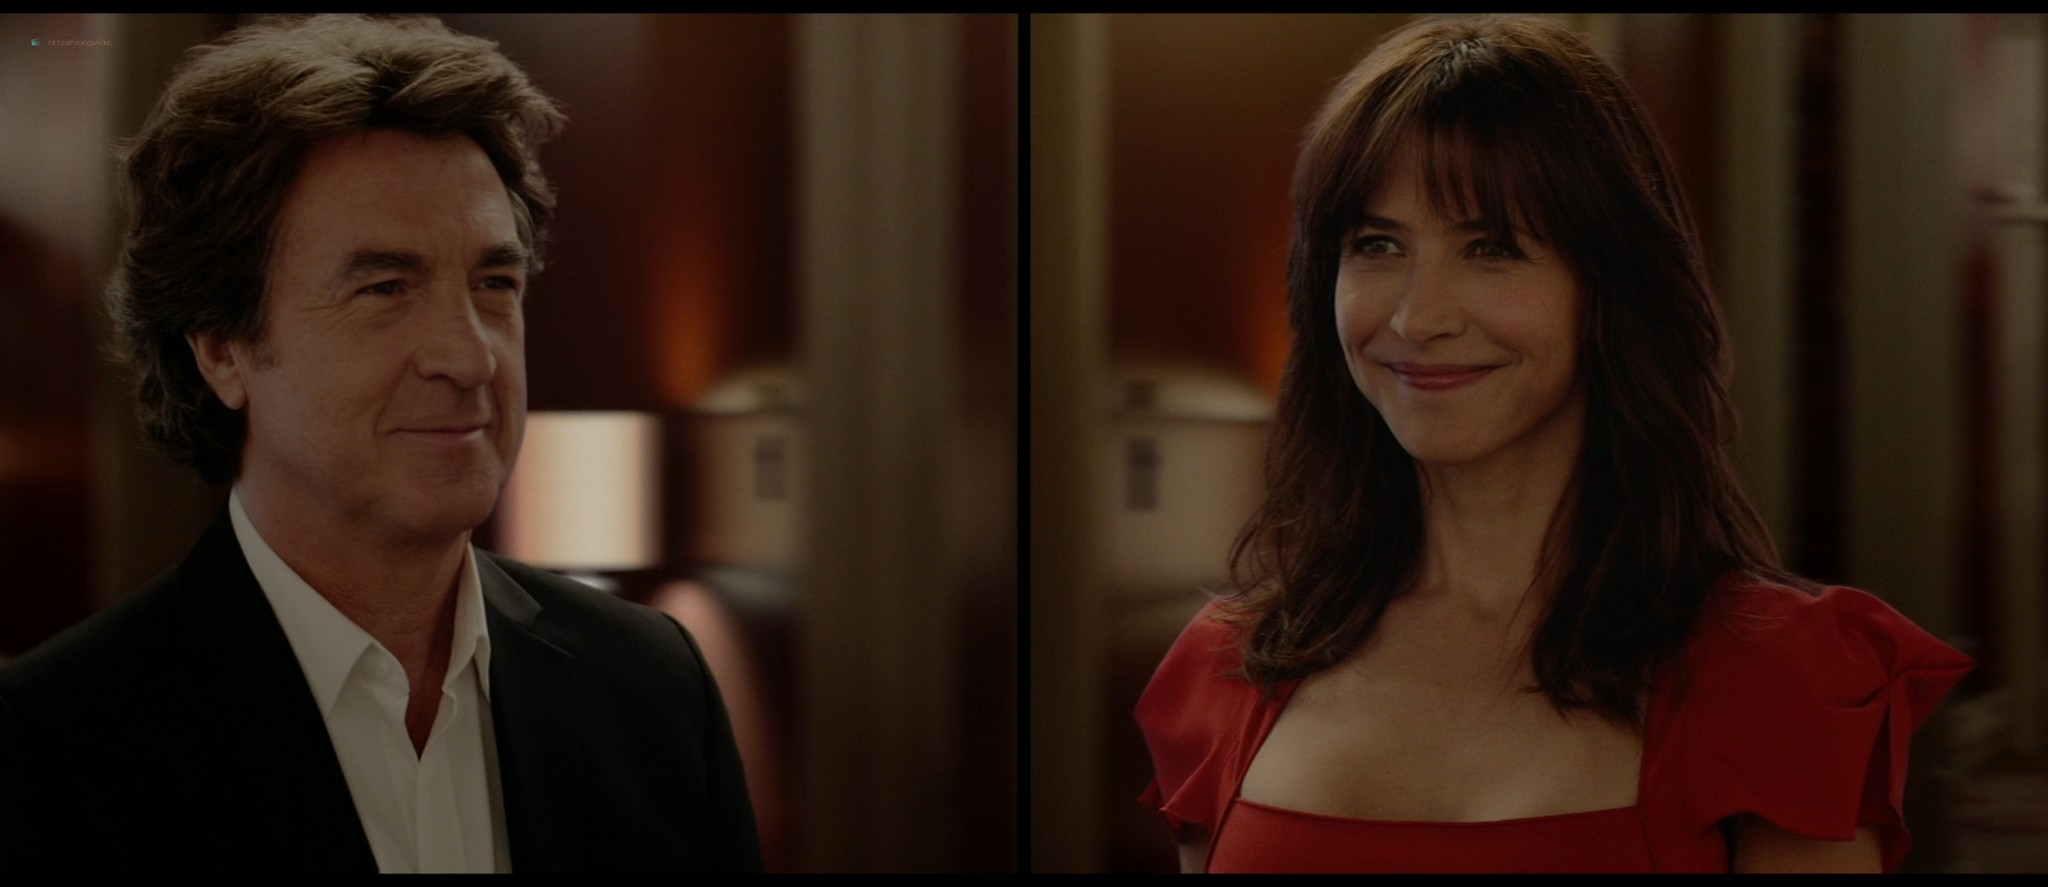 Sophie Marceau nude and sex - Une rencontre (FR-2014) HD 1080p BluRay (7)